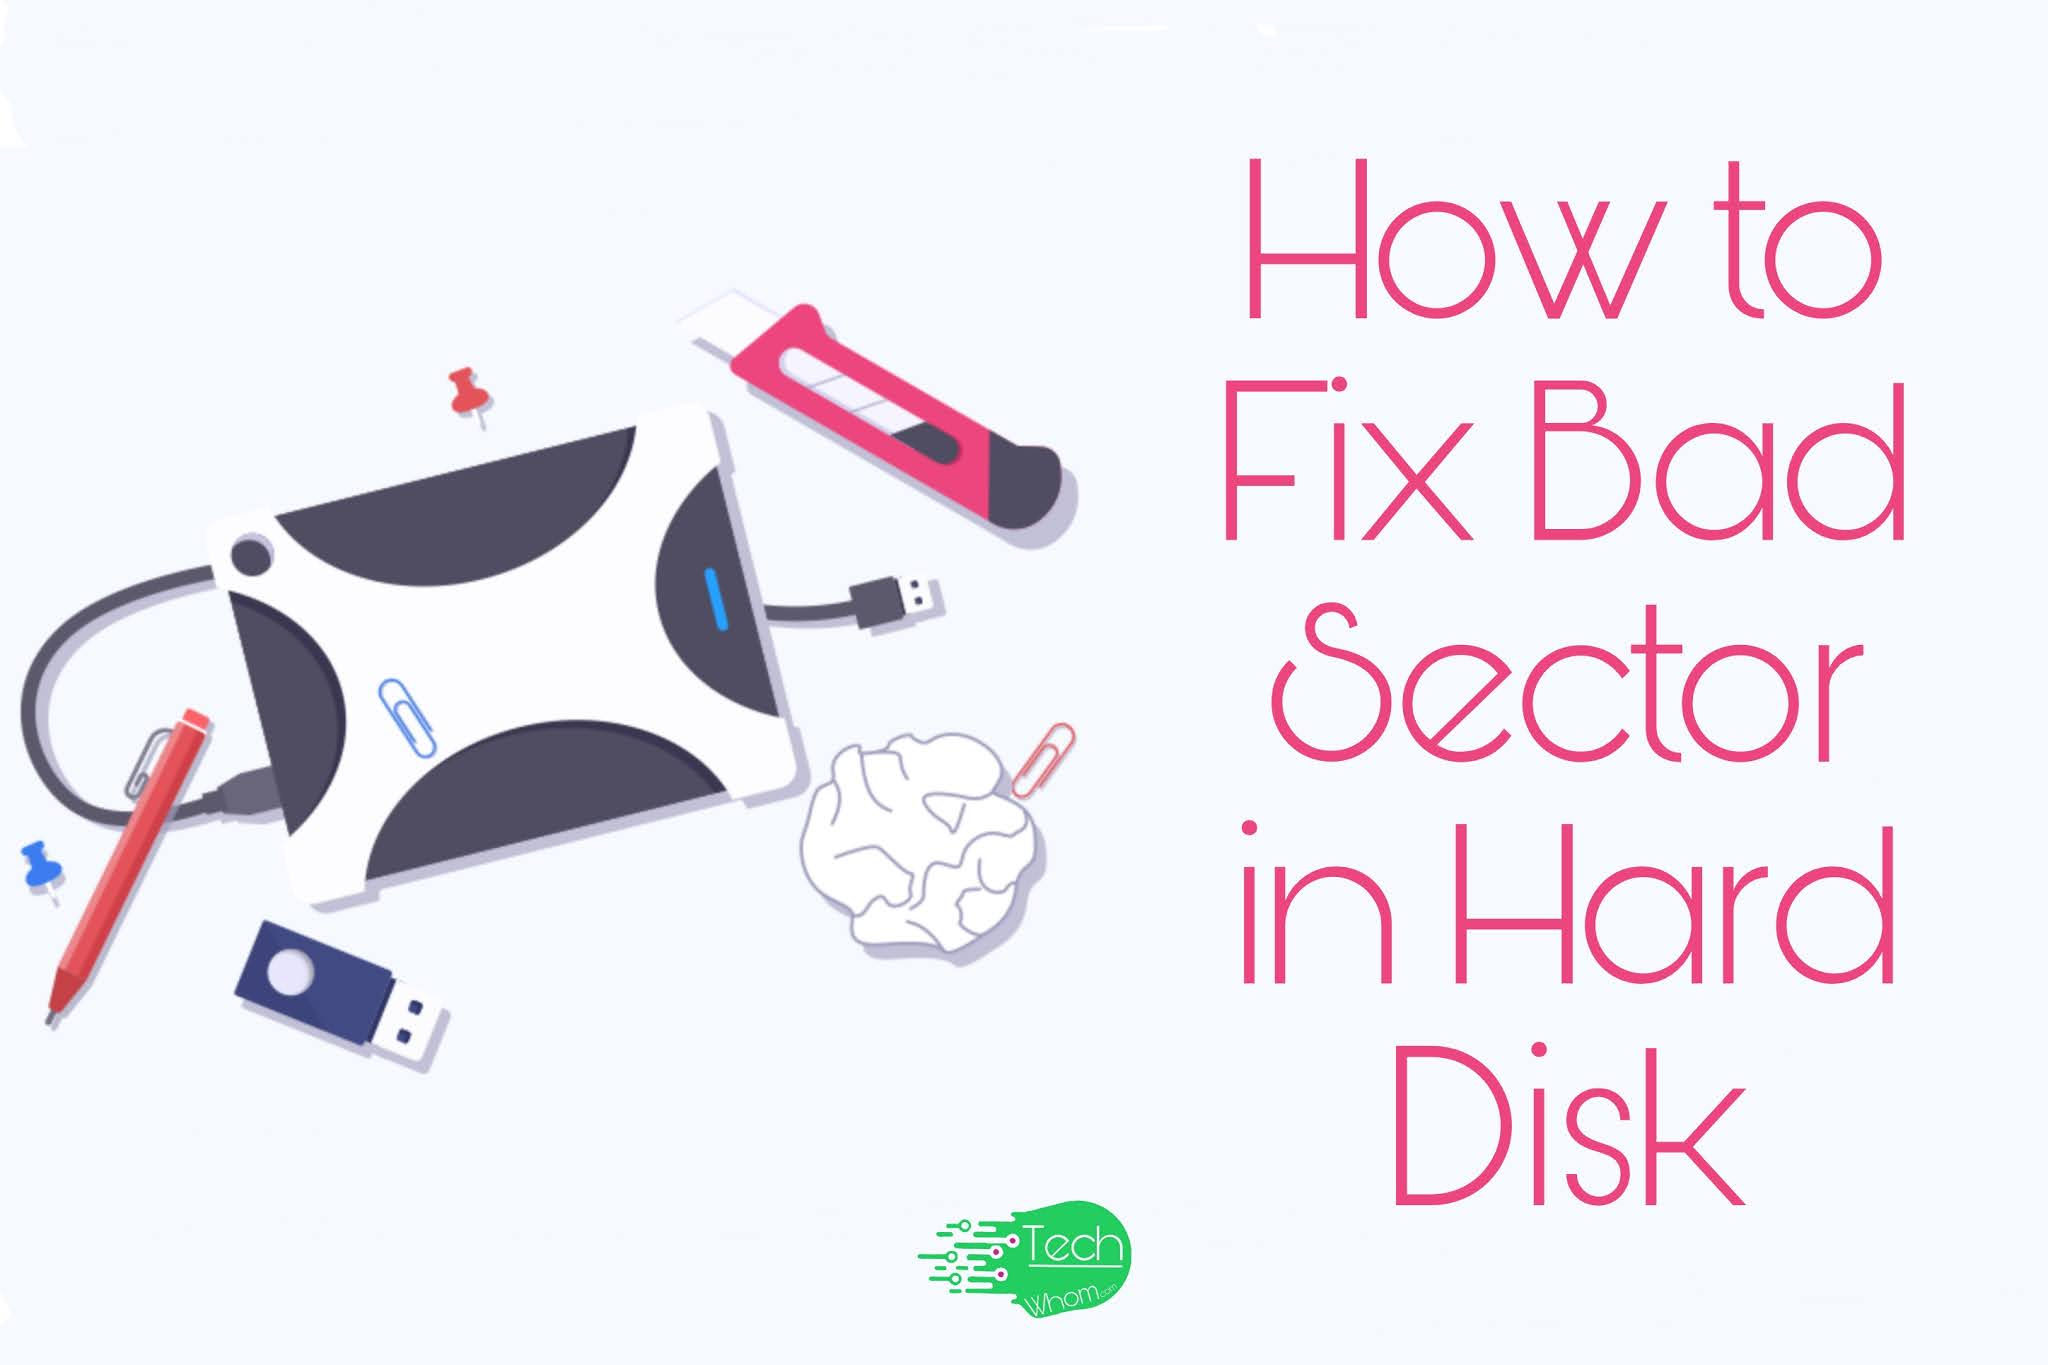 How to Fix Bad Sector in Hard Disk in Windows 10,8,7